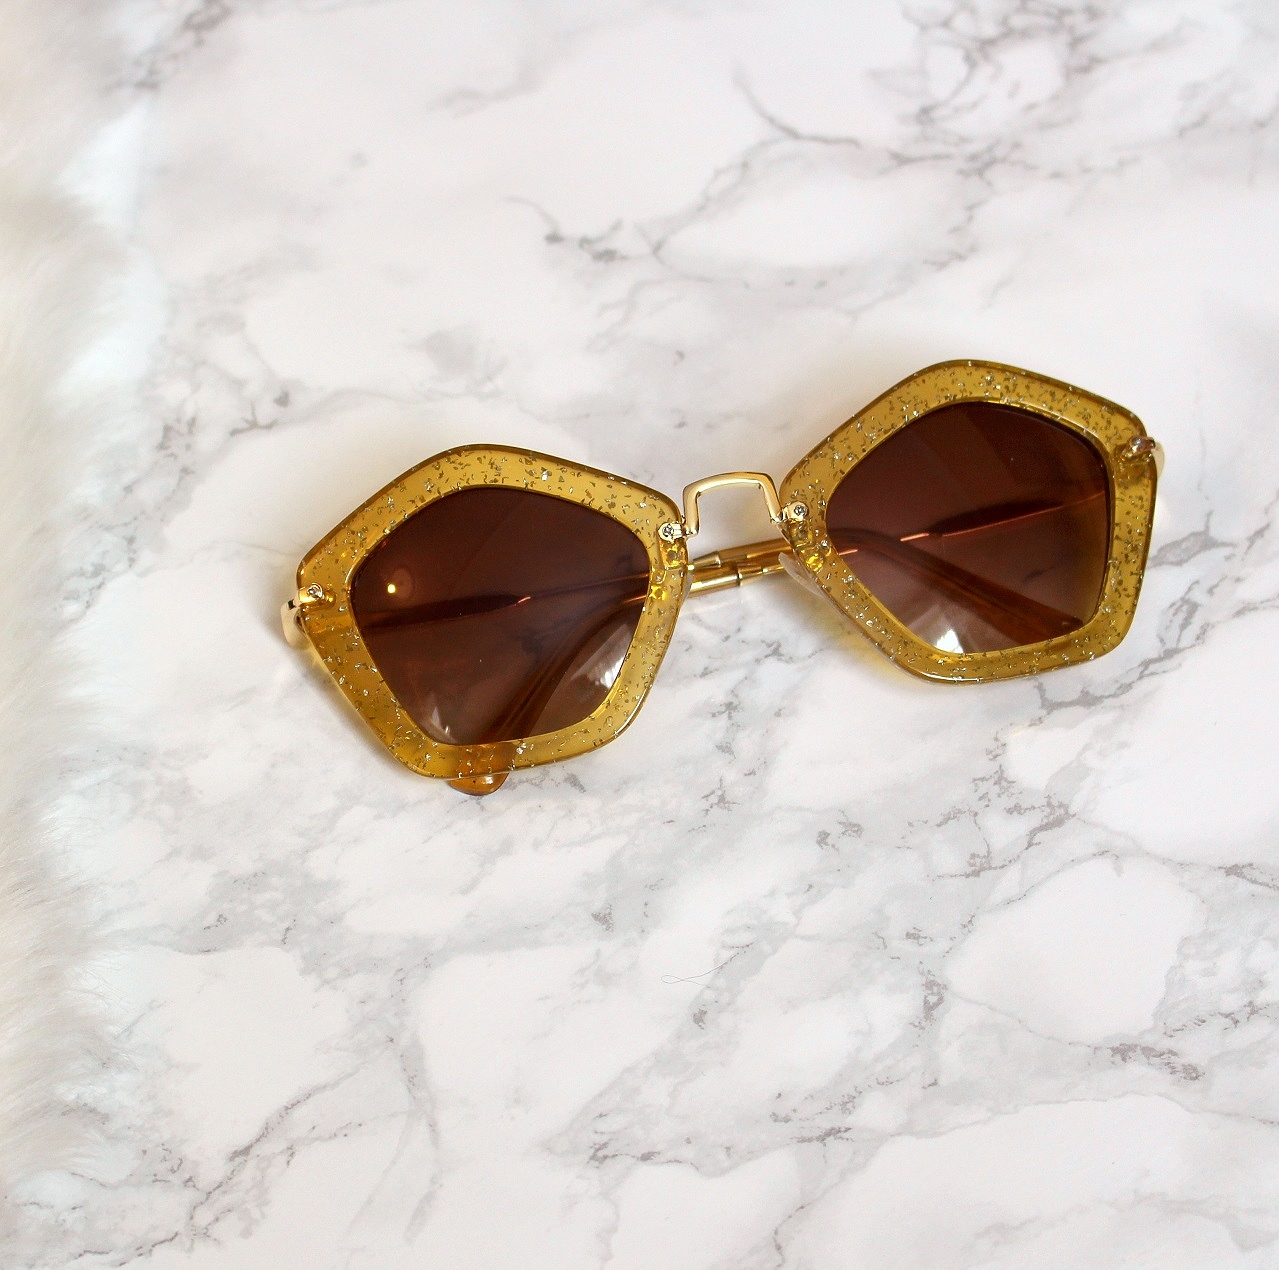 peexo fashion blog gold miu miu inspired sunglasses from laundry boutique